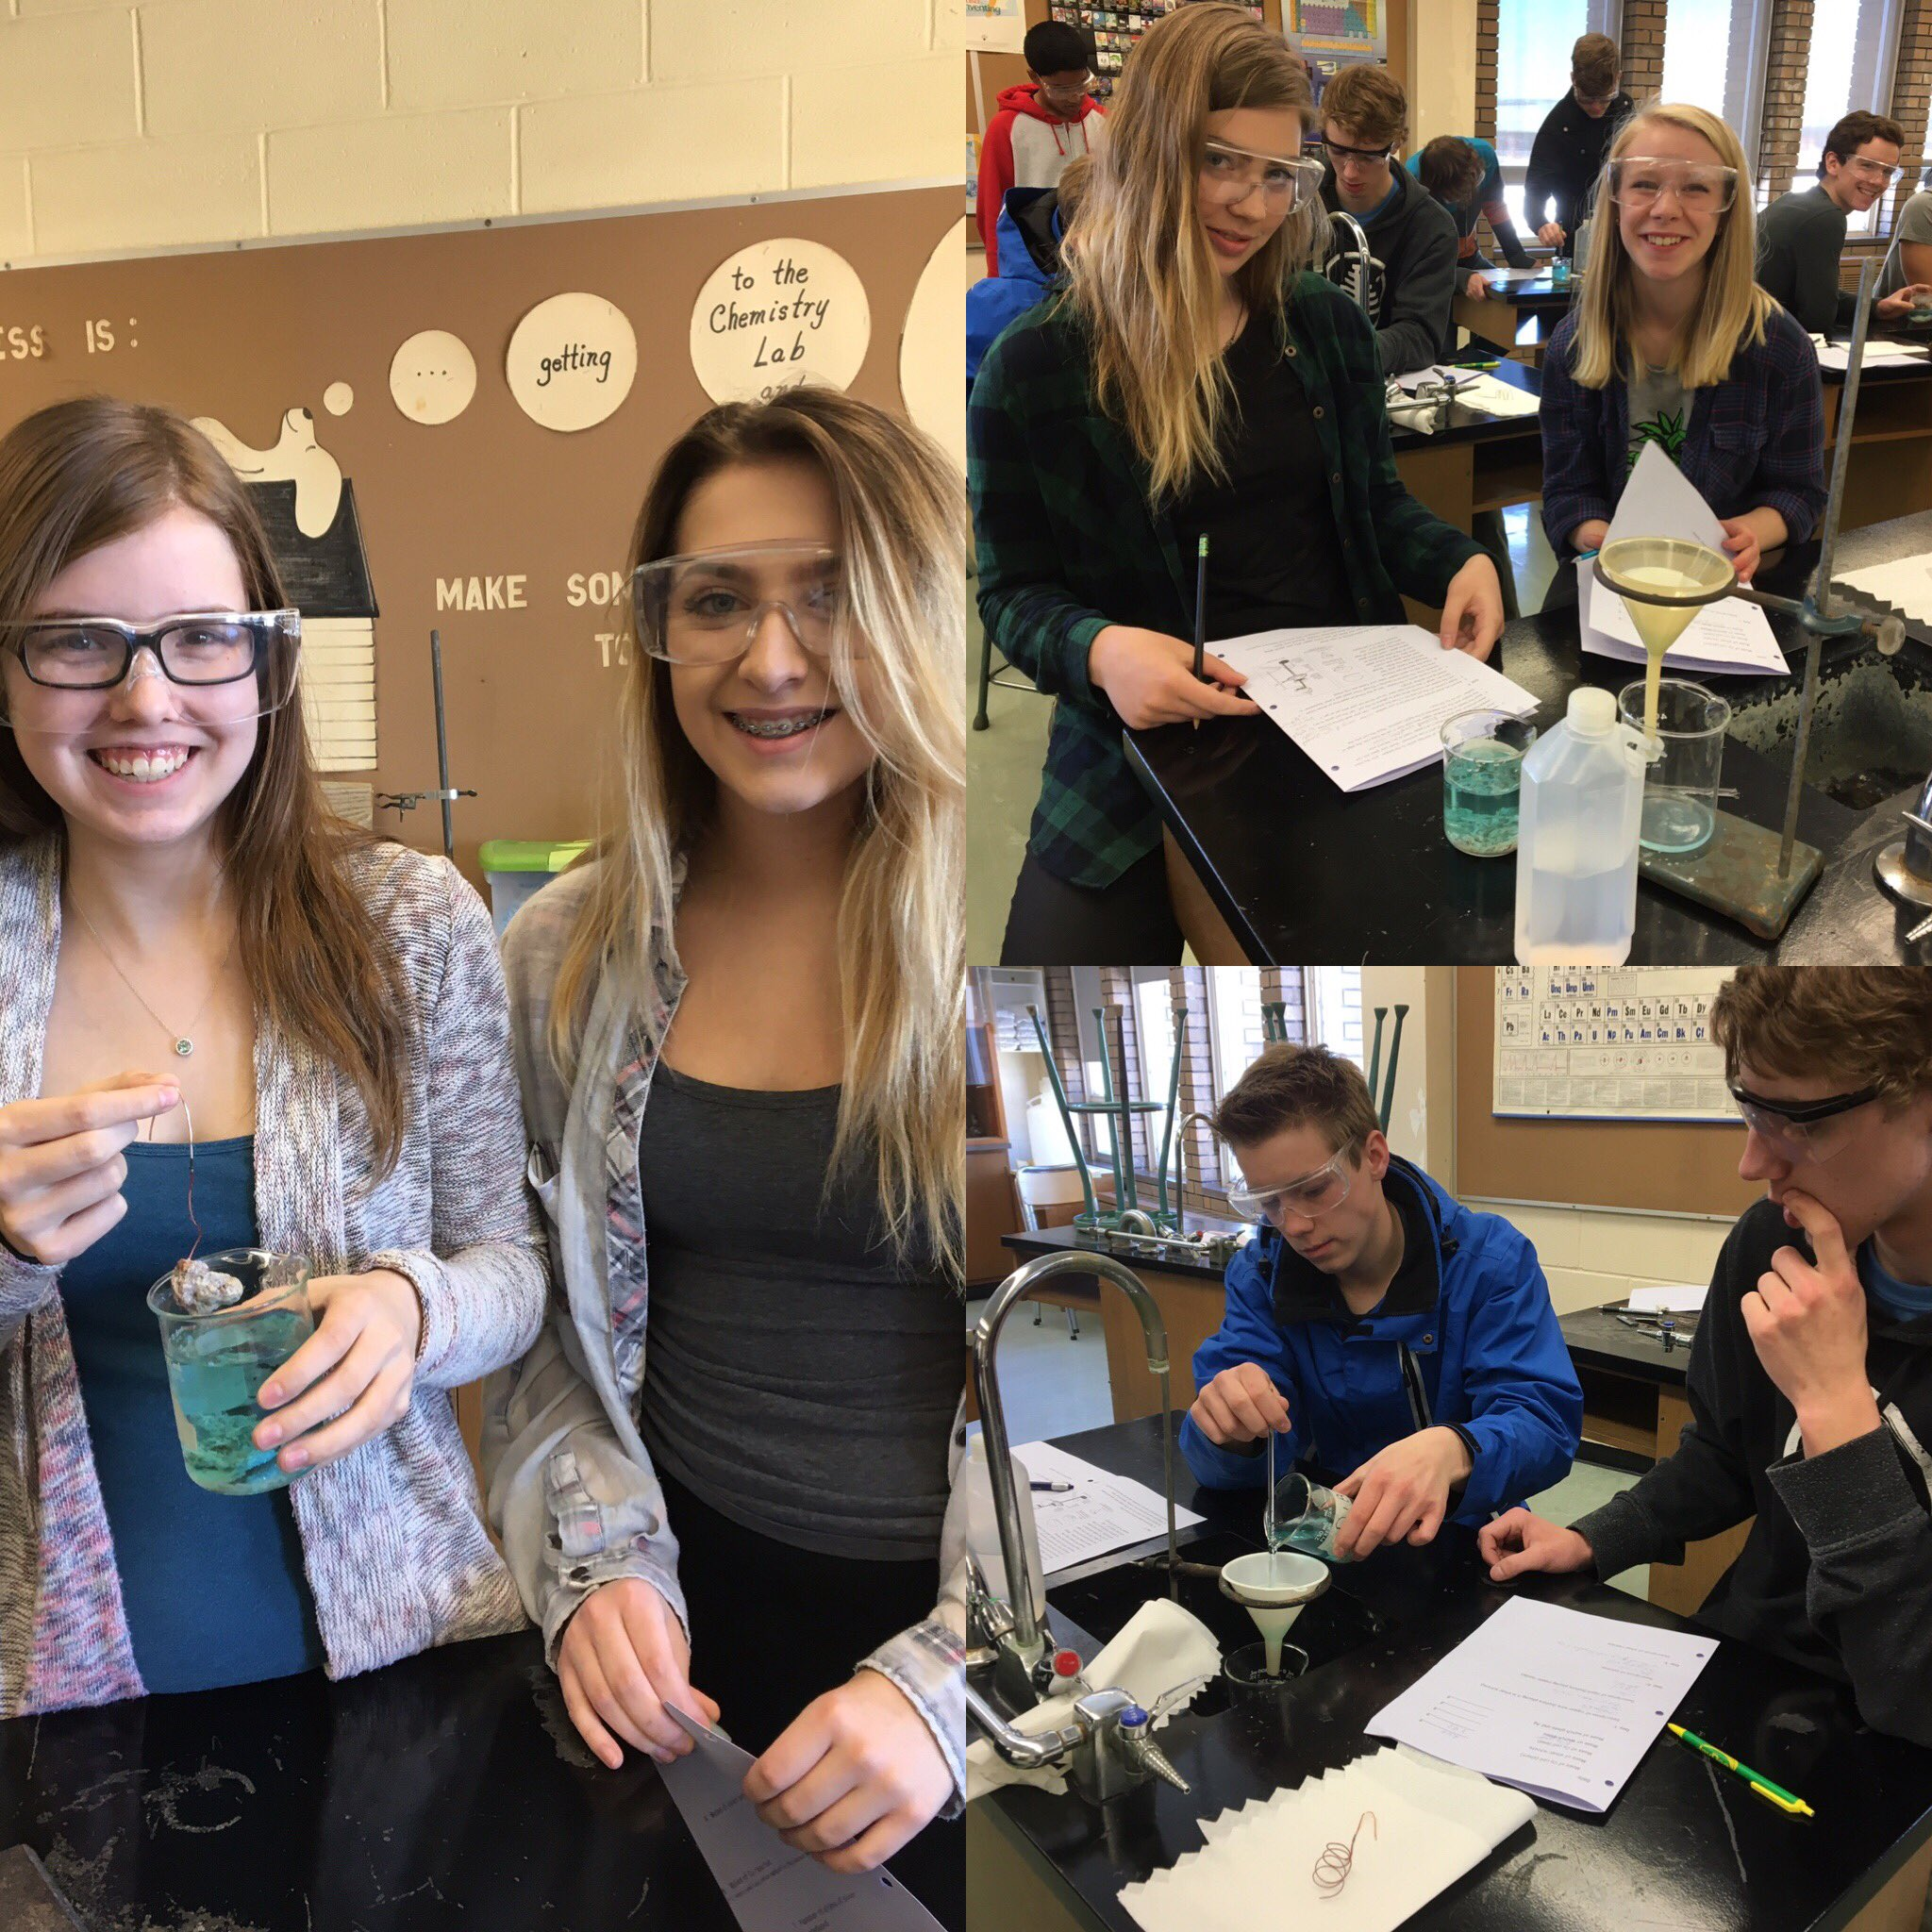 PSC 20 learning how to carry out a filtration! Is it copper 1+ or copper 2+? We'll let you know tomorrow once we're done our analysis! #yrhs https://t.co/QpOALEoPGV